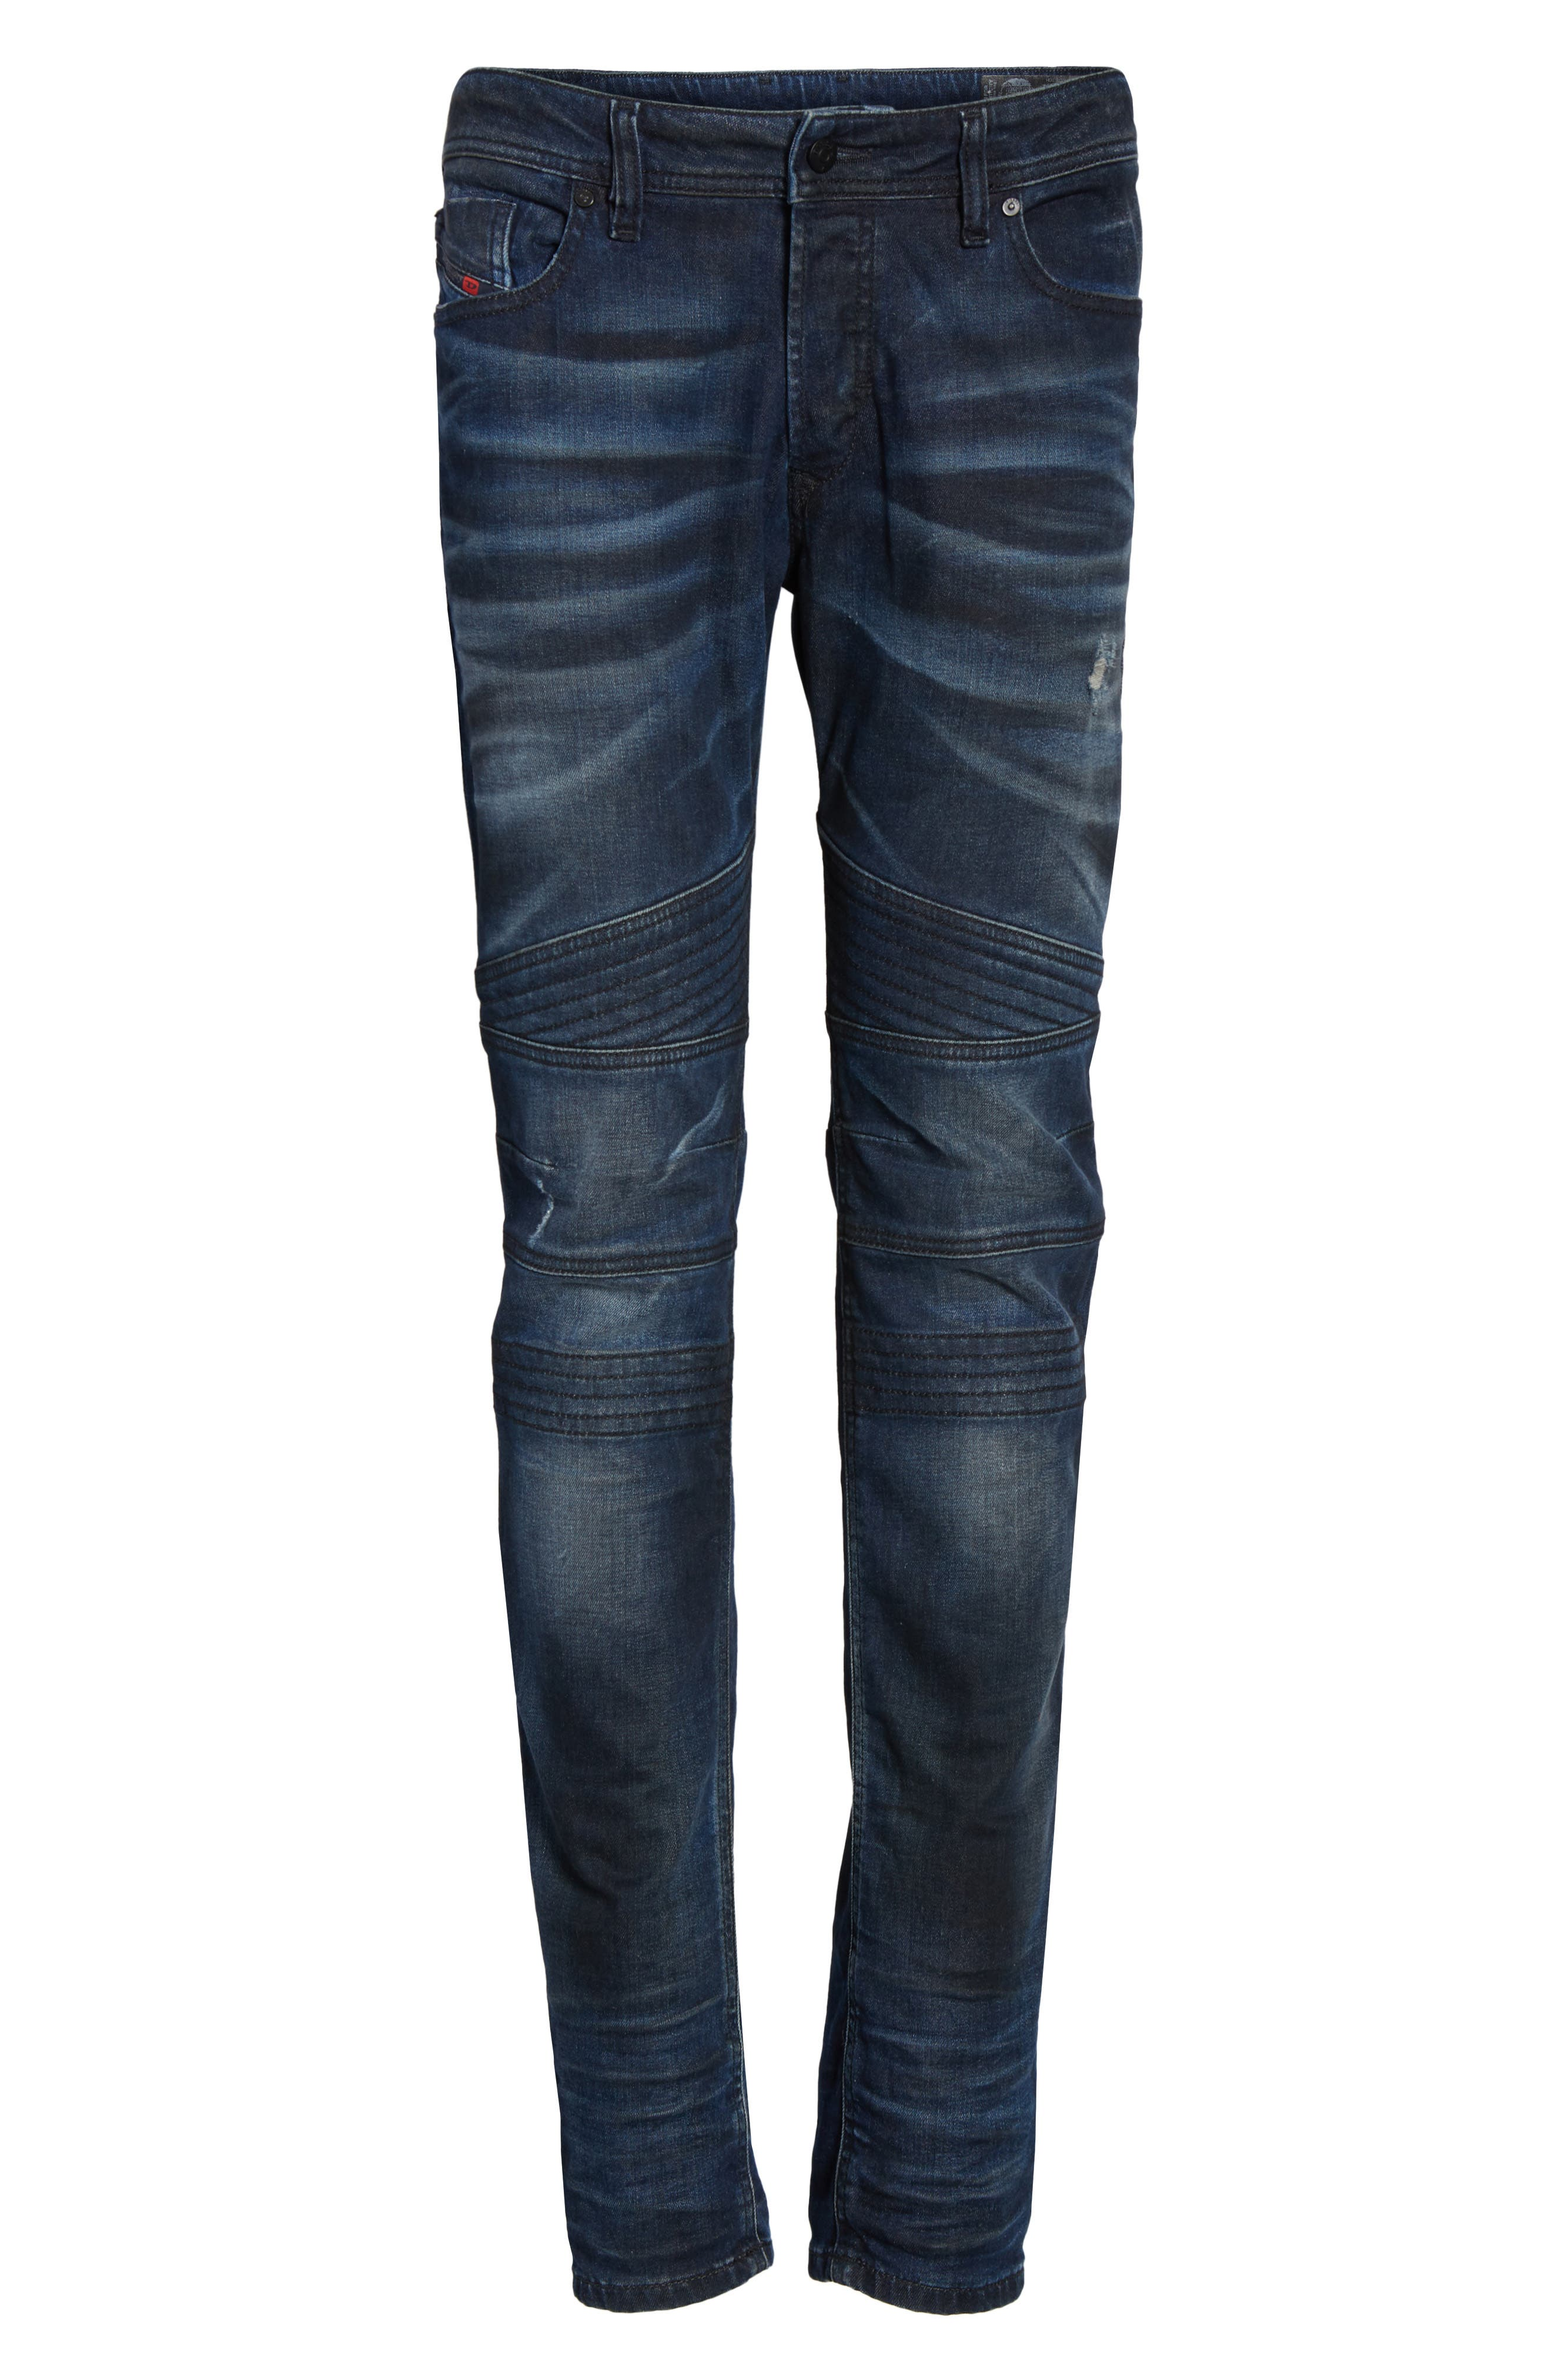 Fourk Skinny Fit Jeans,                             Alternate thumbnail 6, color,                             400